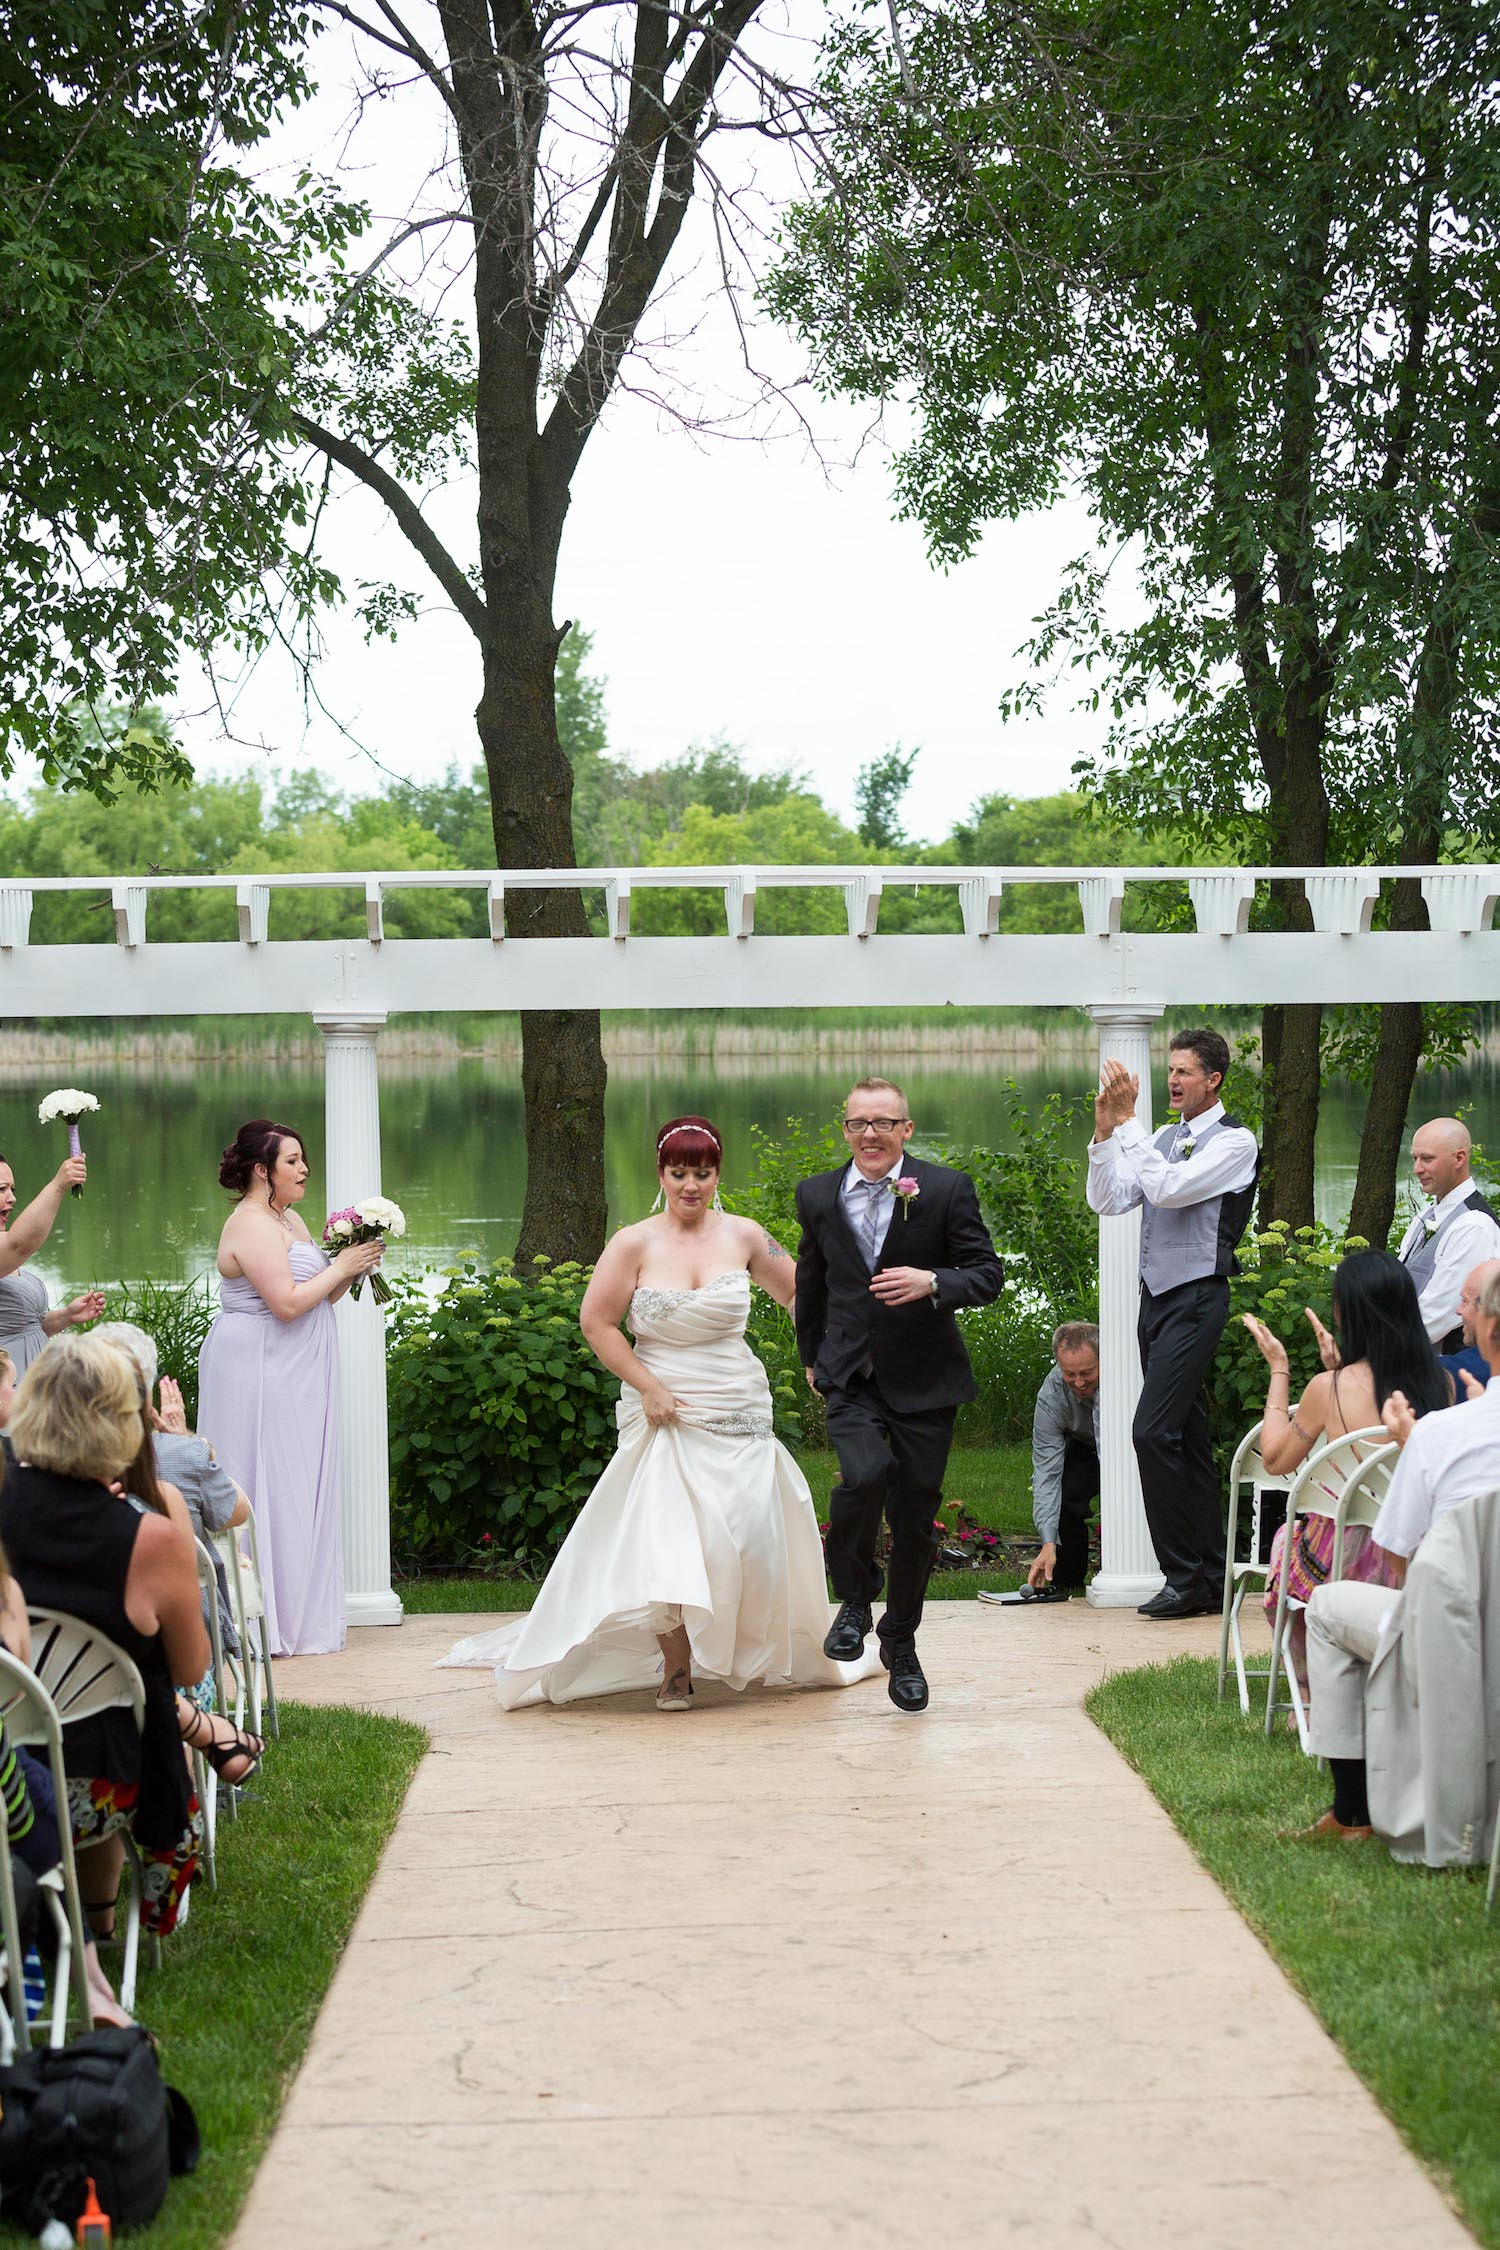 Cindyrella's Garden outdoor ceremony by the lake with a redhead bride, skipping down the aisle